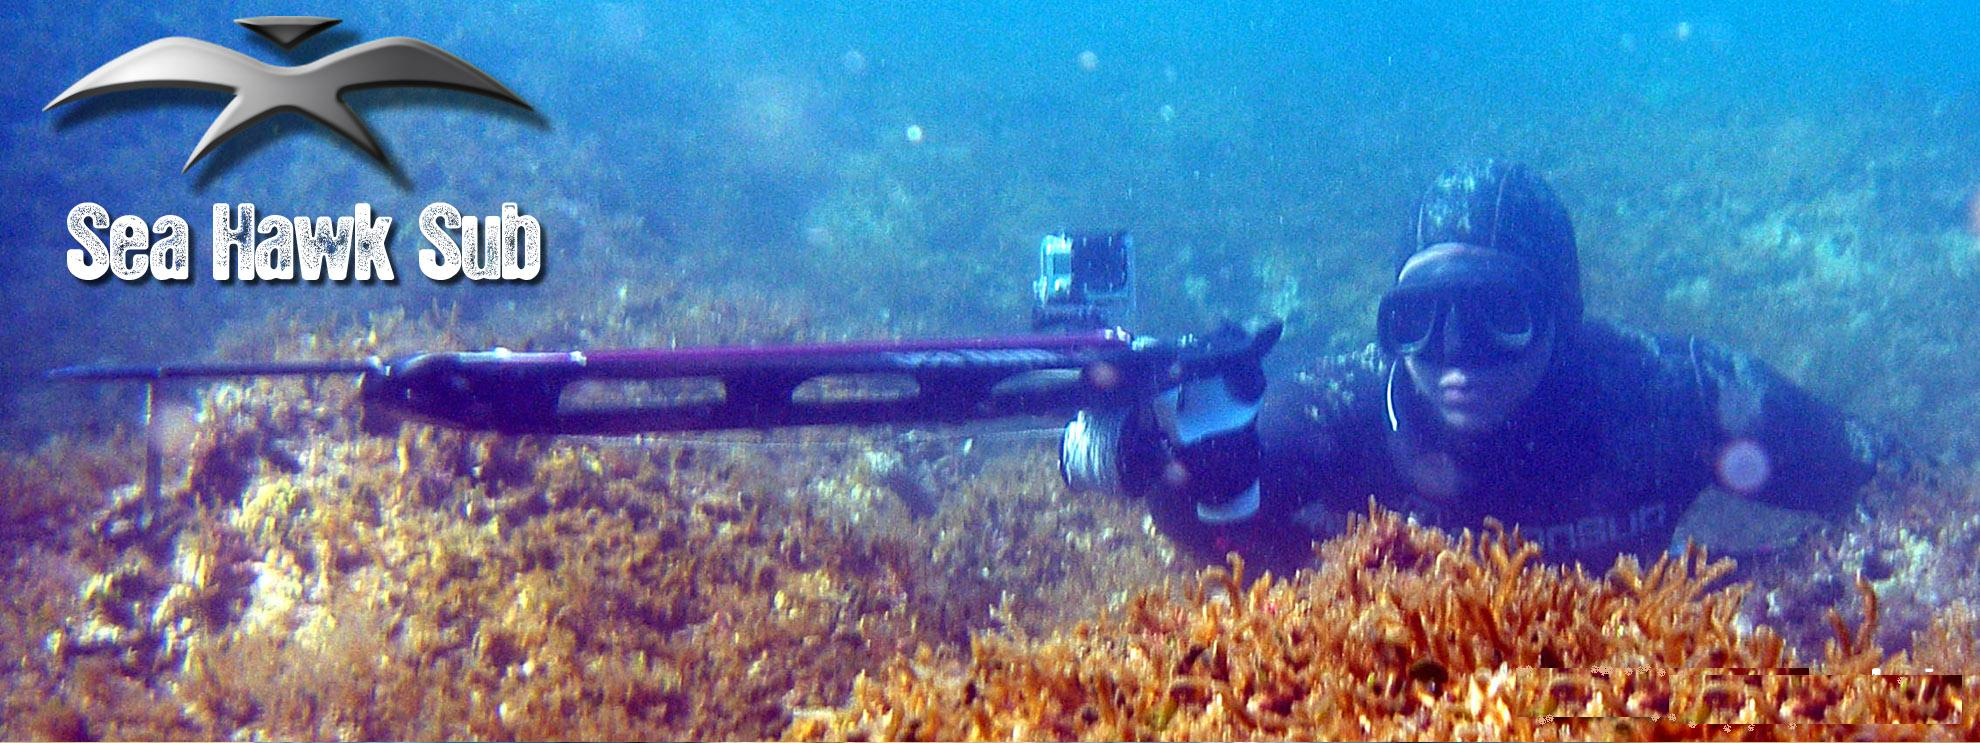 seahawksub Spearfishing pescasub 033